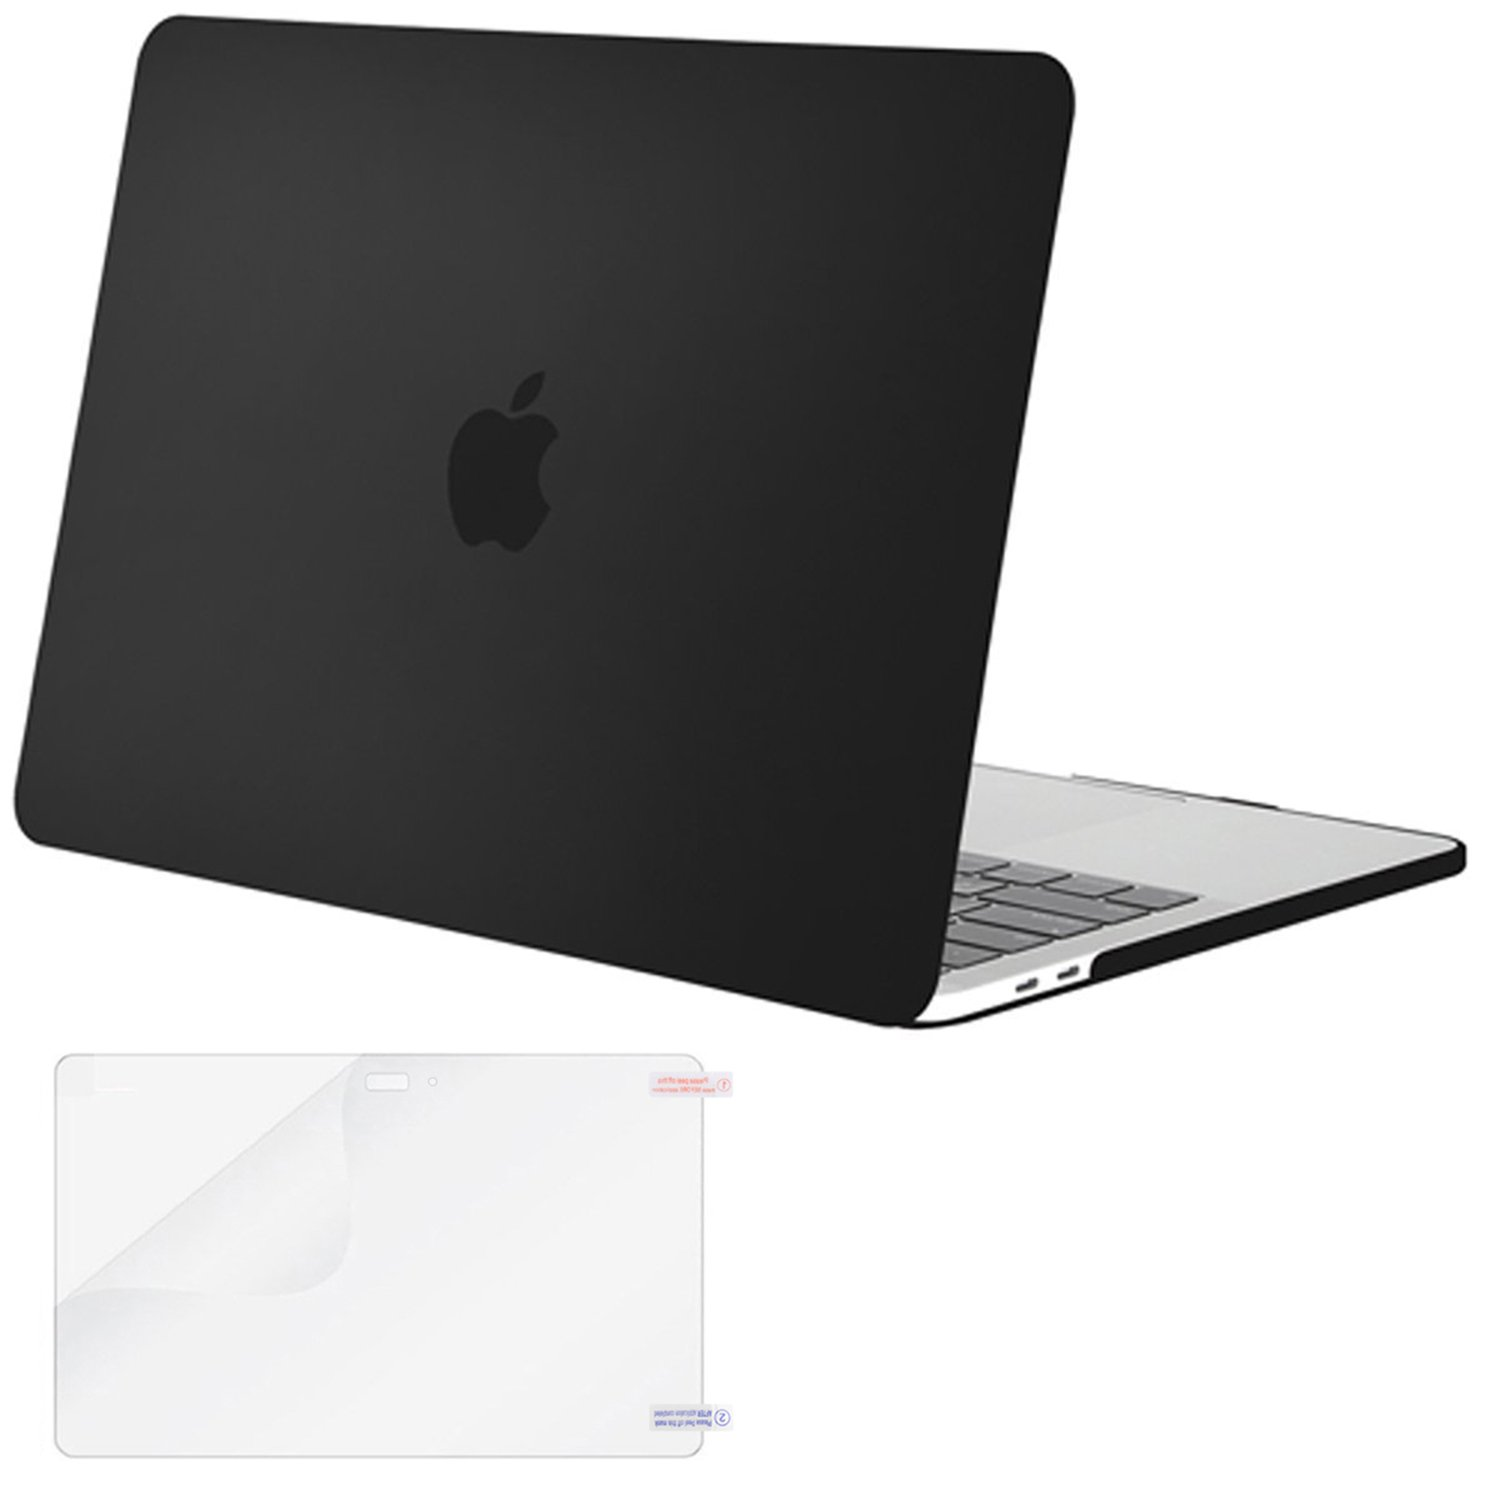 Mosiso MacBook Pro 15 Case 2017 & 2016 Release A1707, Plastic Hard Case Shell Cover with Screen Protector for Newest Macbook Pro 15 Inch with Touch Bar and Touch ID, Black